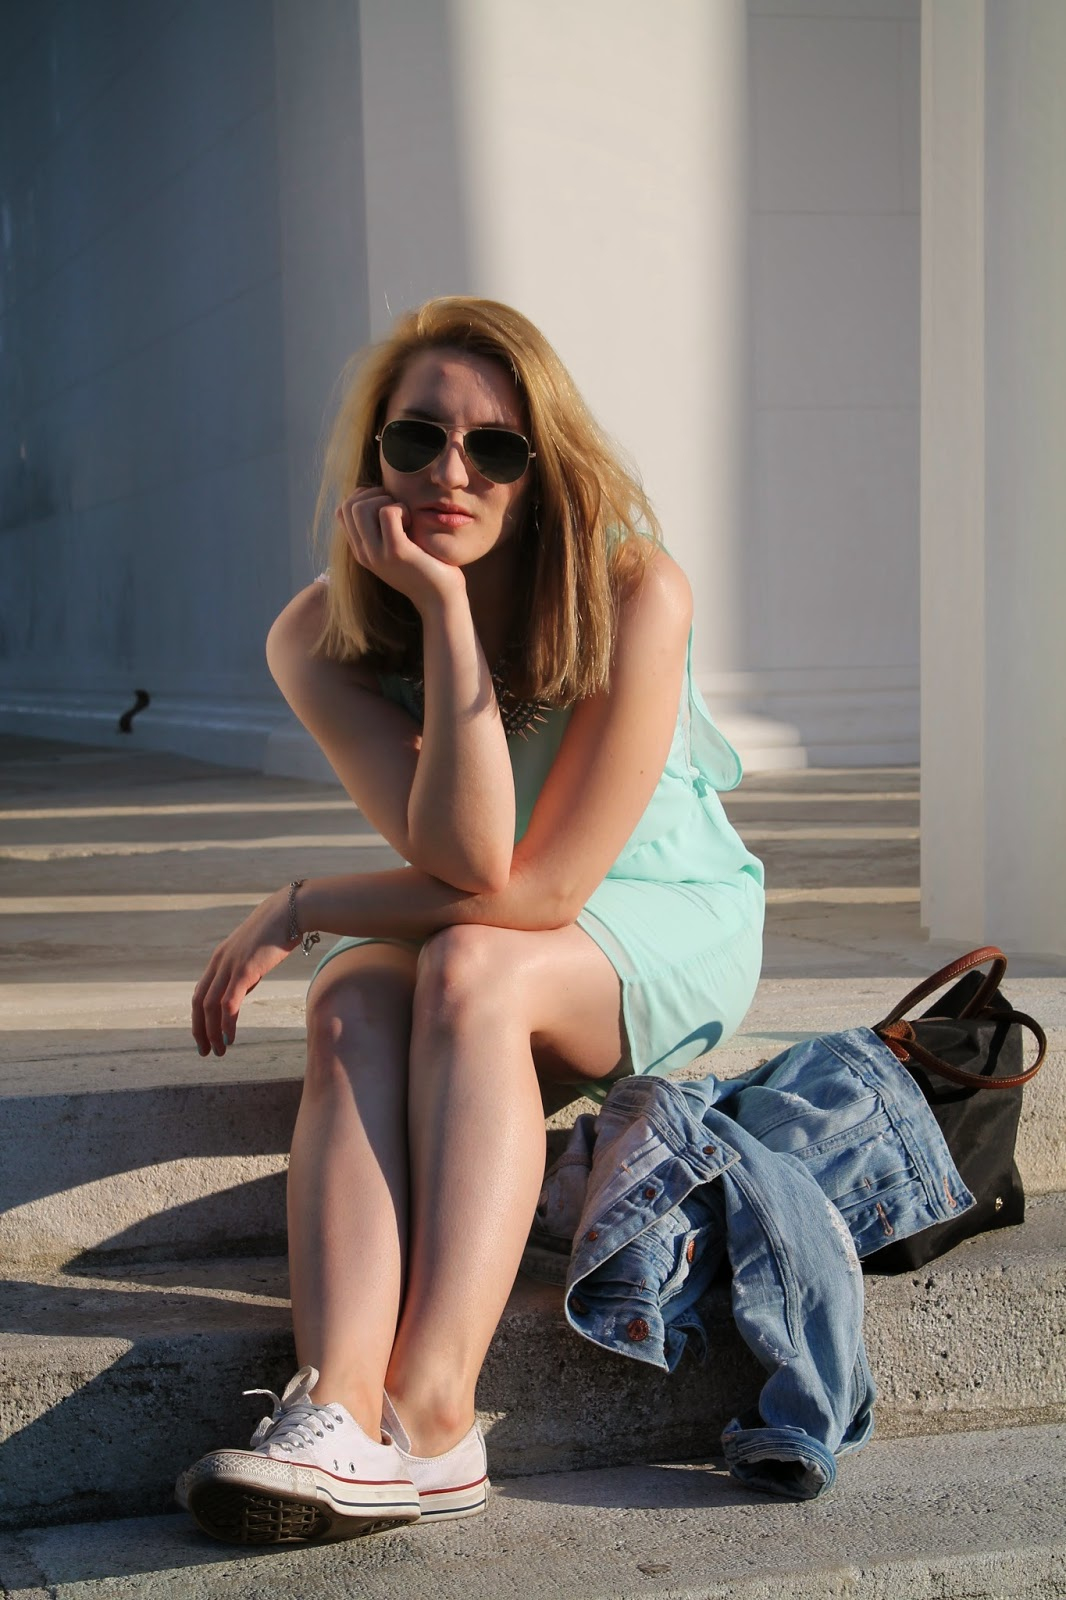 Fashionblogger Austria / Österreich / Deutsch / German / Kärnten / Carinthia / Klagenfurt / Köttmannsdorf / Spring Look / Classy / Edgy / Summer / Summer Style 2014 / Summer Look / Fashionista Look / Pimkie / Longchamp / Zara / Converse / Stament Necklace / Volksgarten / Mint / Ray Ban